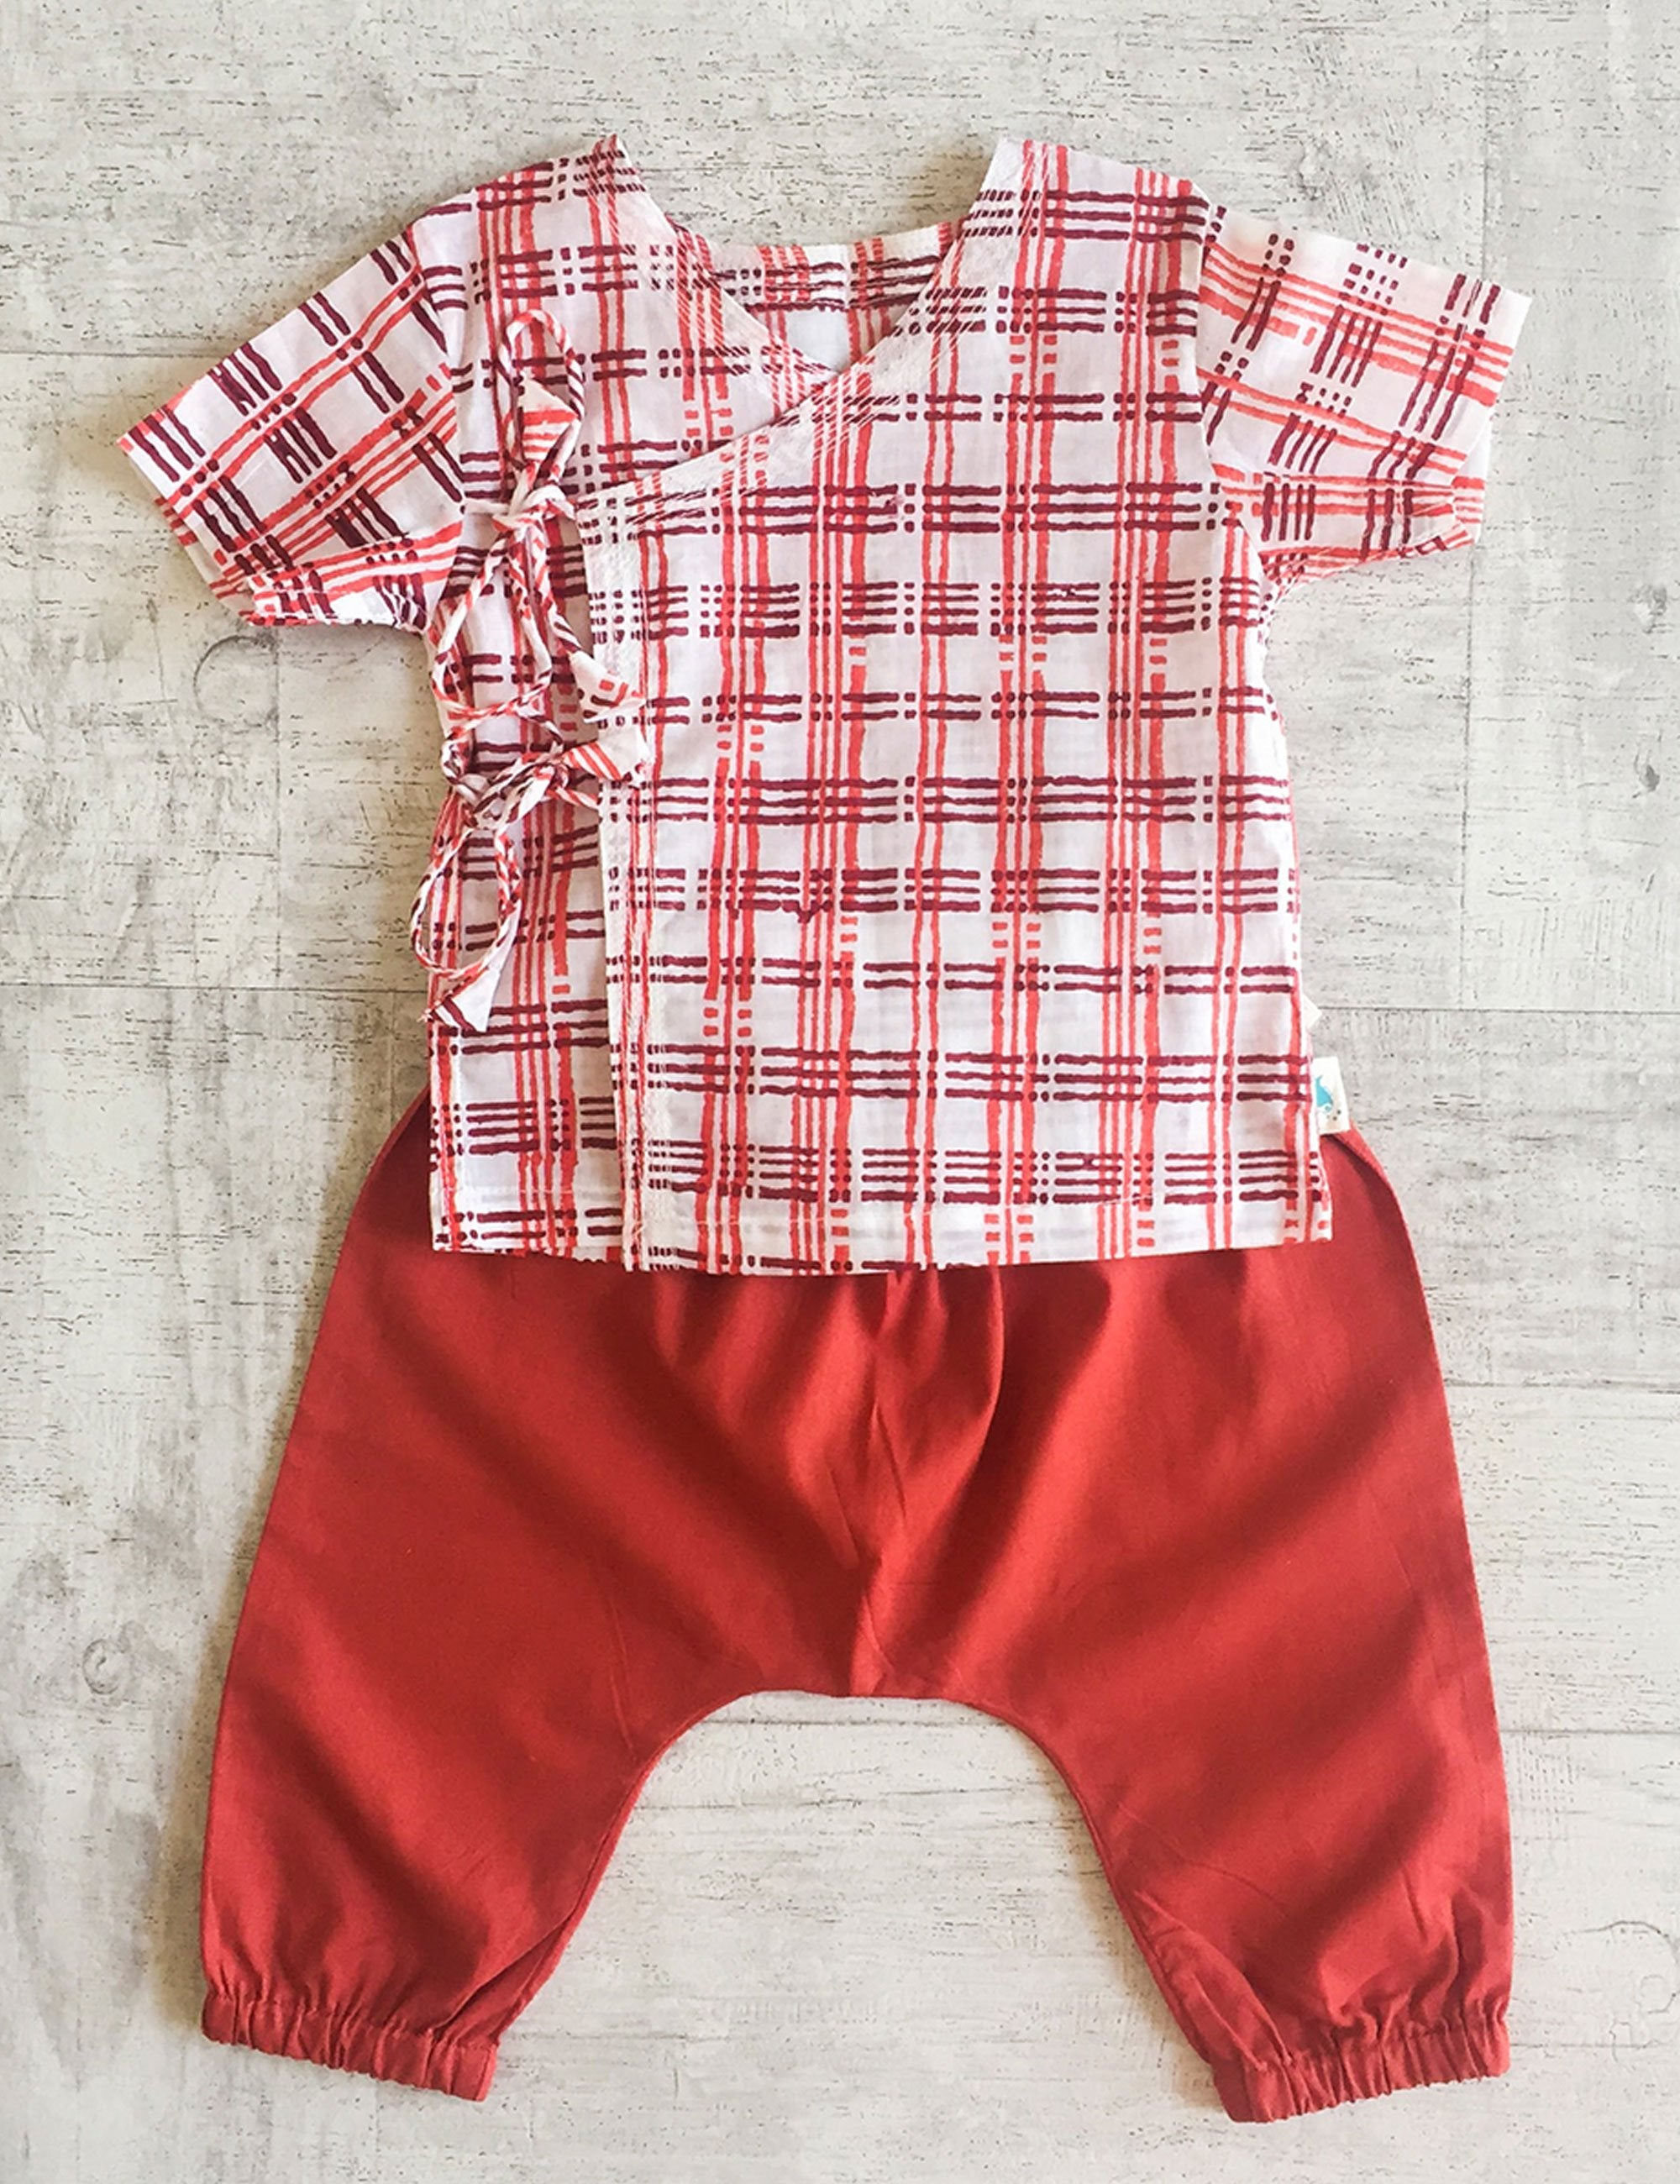 Checks Print Top with Pajama In White and Red Colour for Girls and Boys